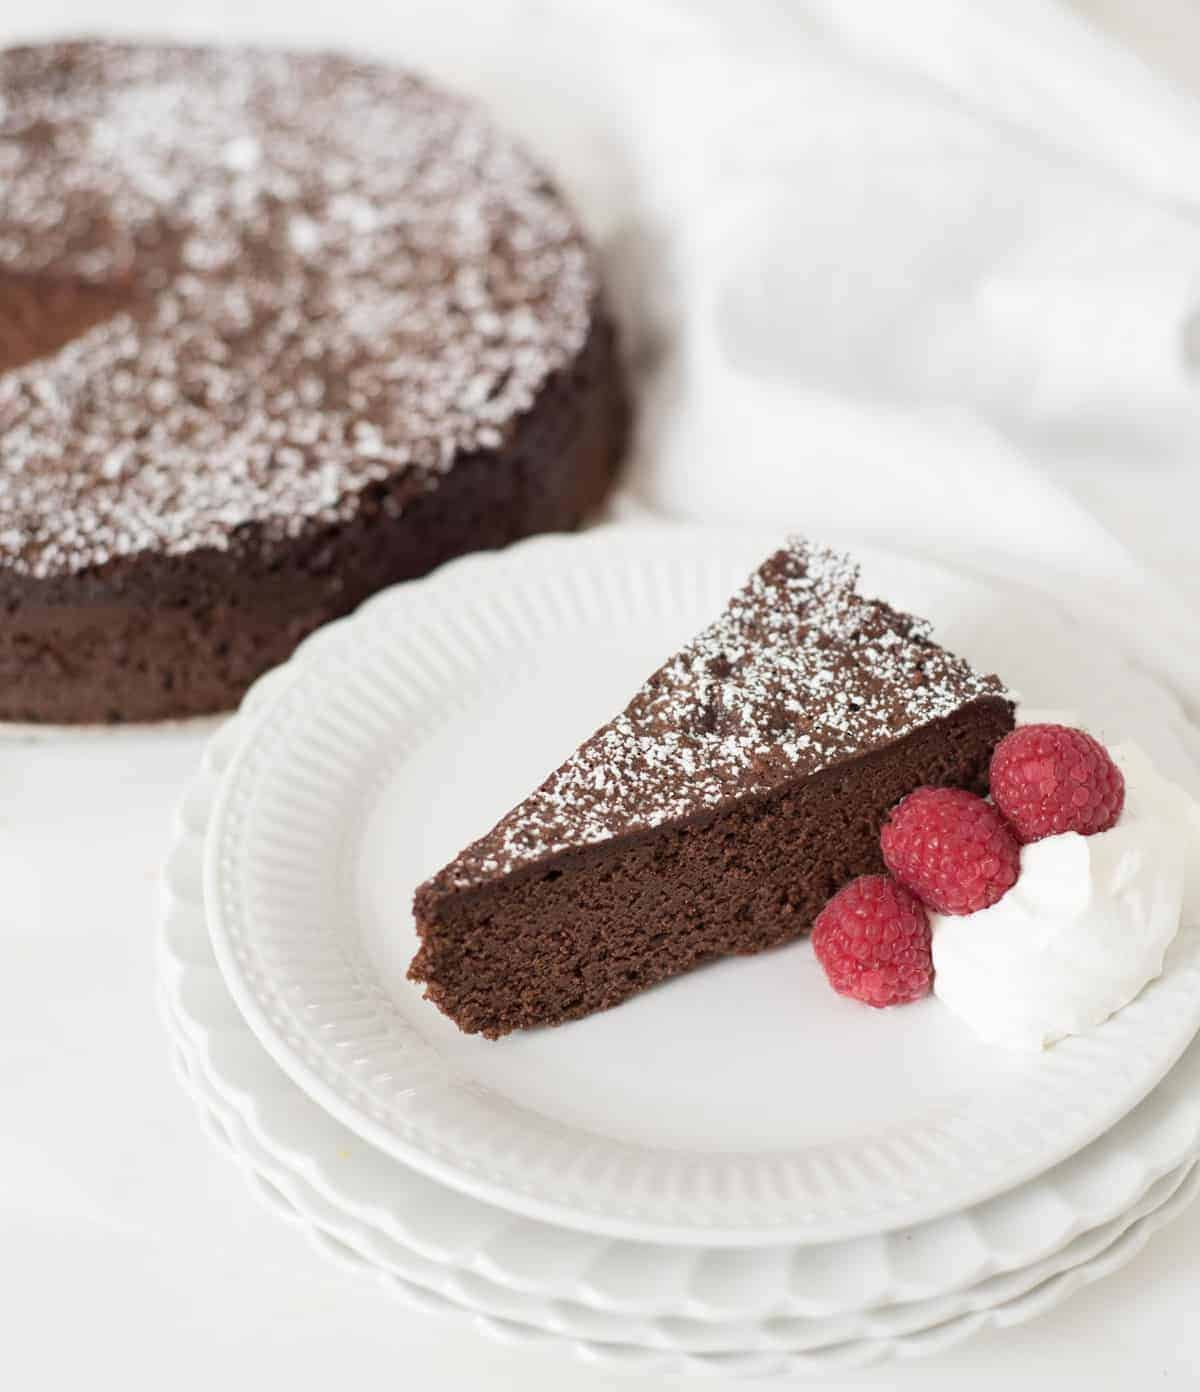 Light and fluffy flourless chocolate torte recipe made from just three simple ingredients. You won't believe how delicious this flourless chocolate torte is.